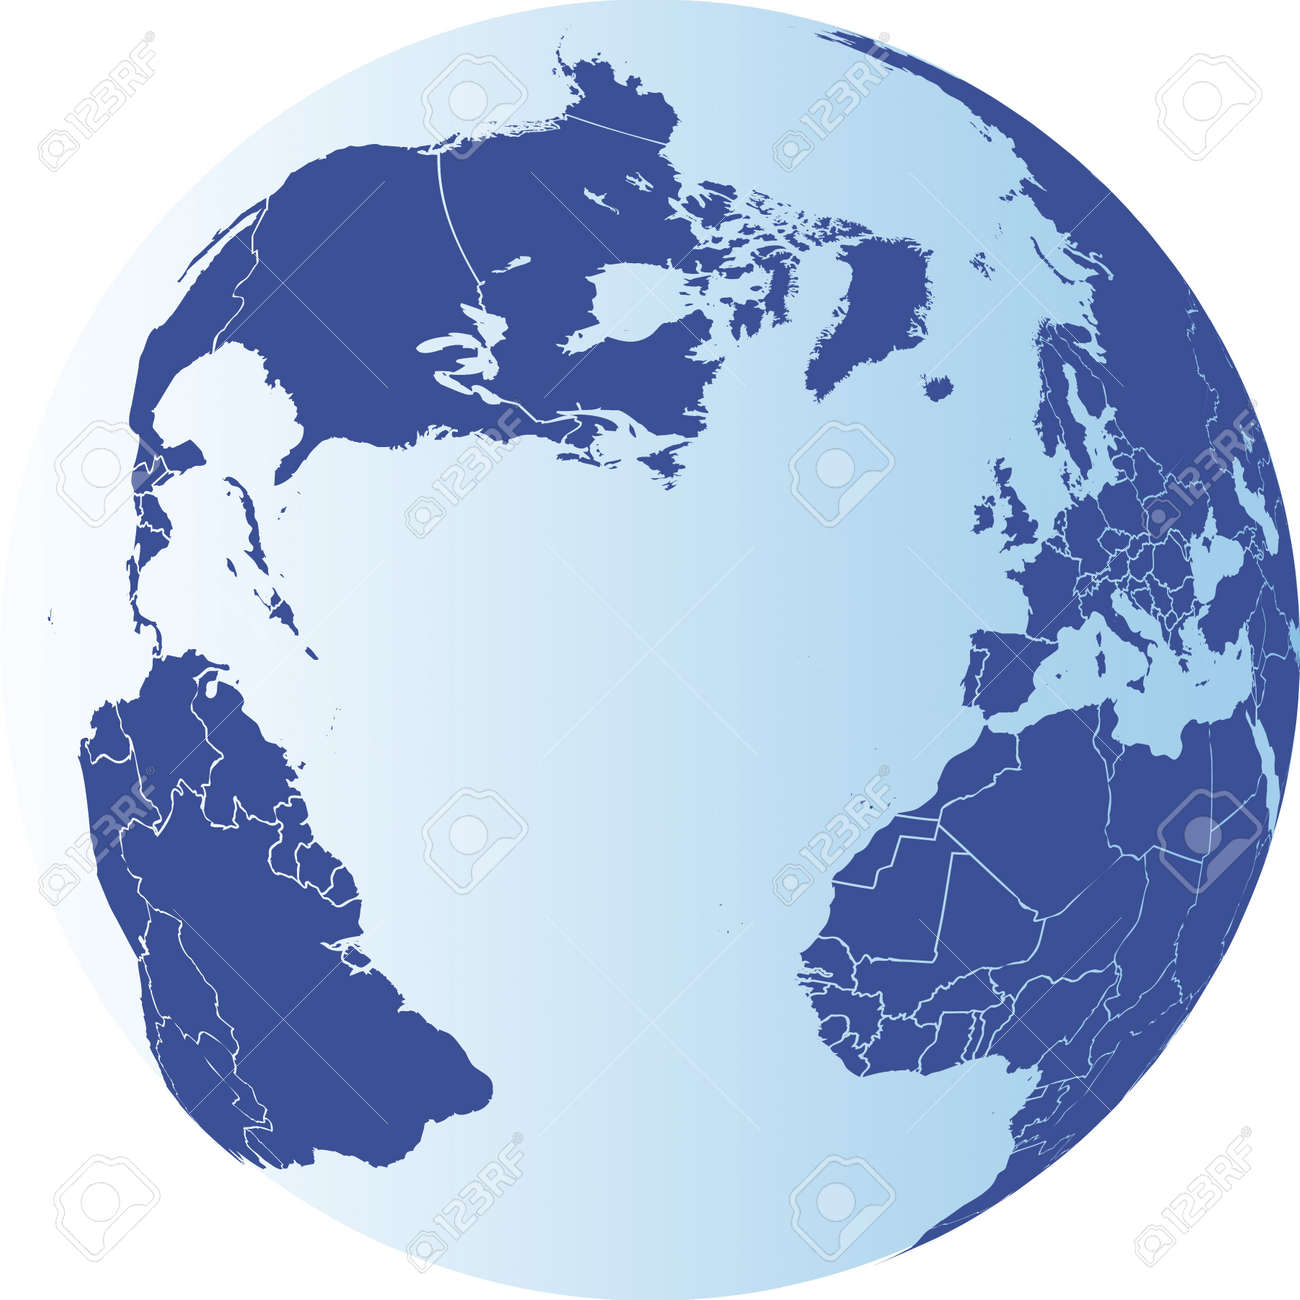 North America, South America, Europe and Africa Globe. Vector.. on map of antarctica globe, map of pacific ocean globe, map of world globe,